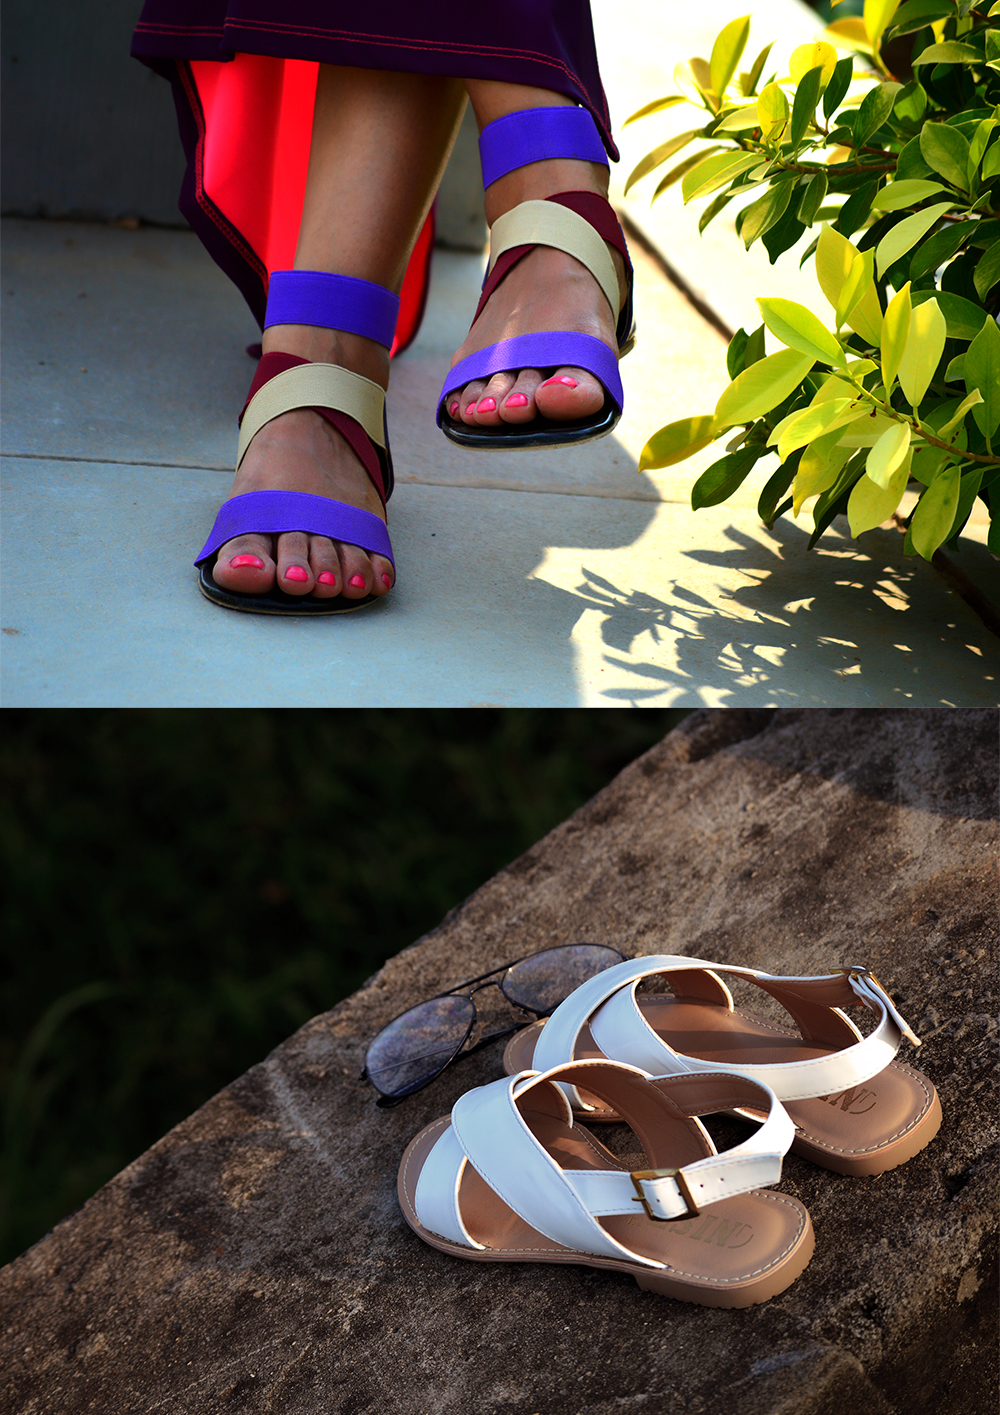 Fashion, Summer Fashion, Sandals, Beauty, Shopping Guide, Photography